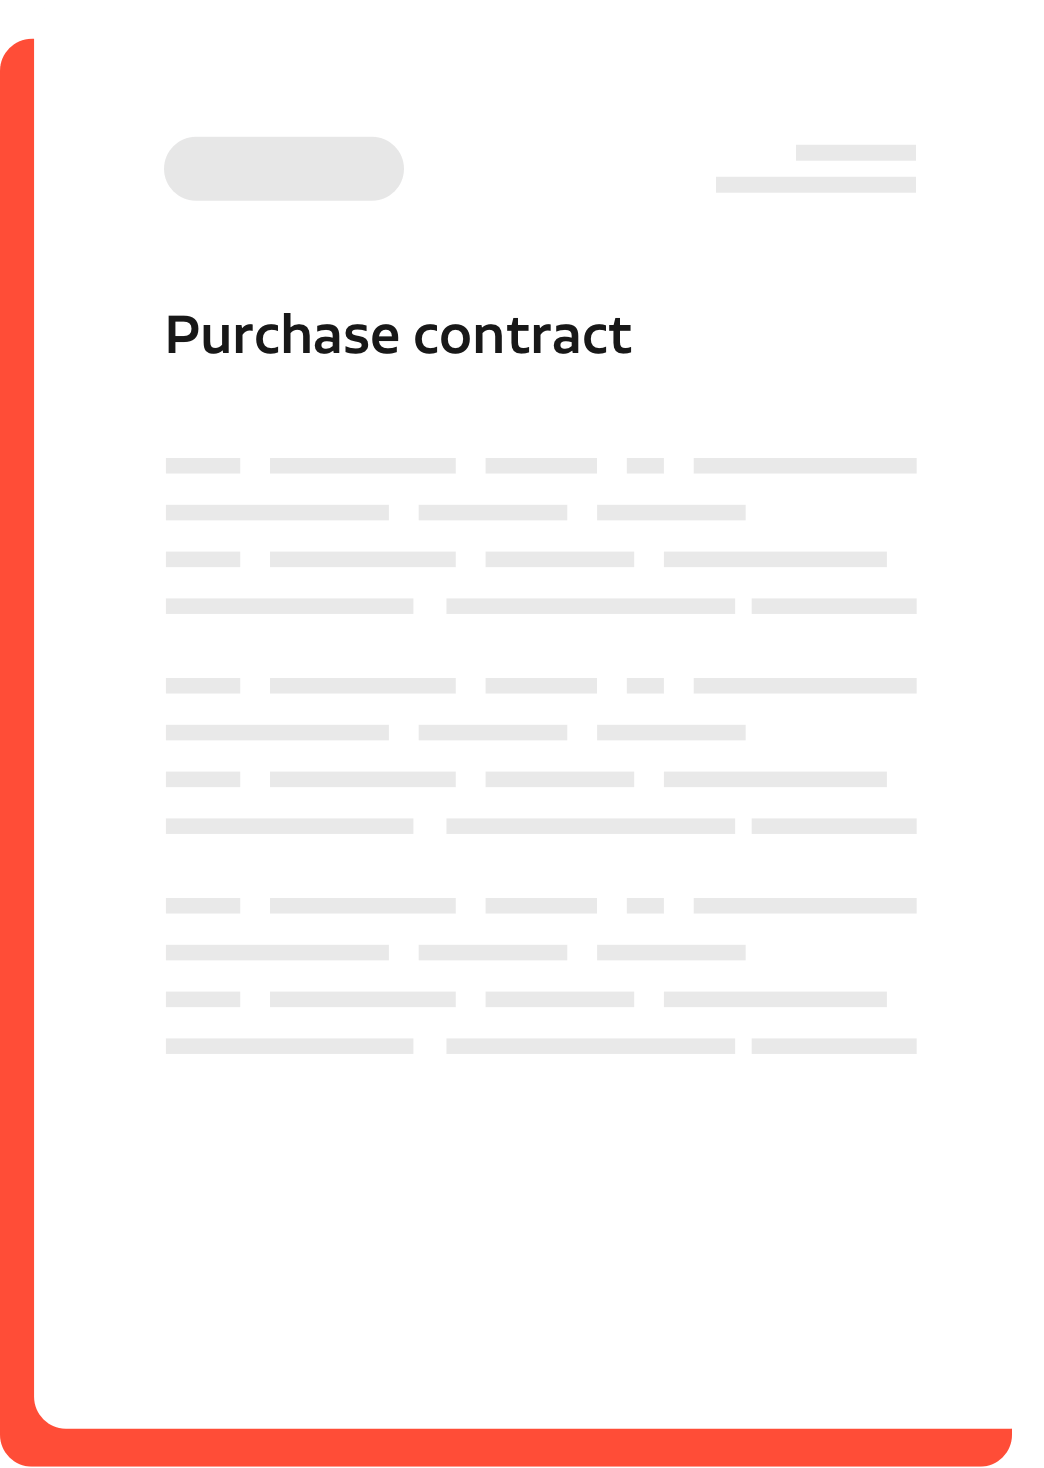 Contract automation